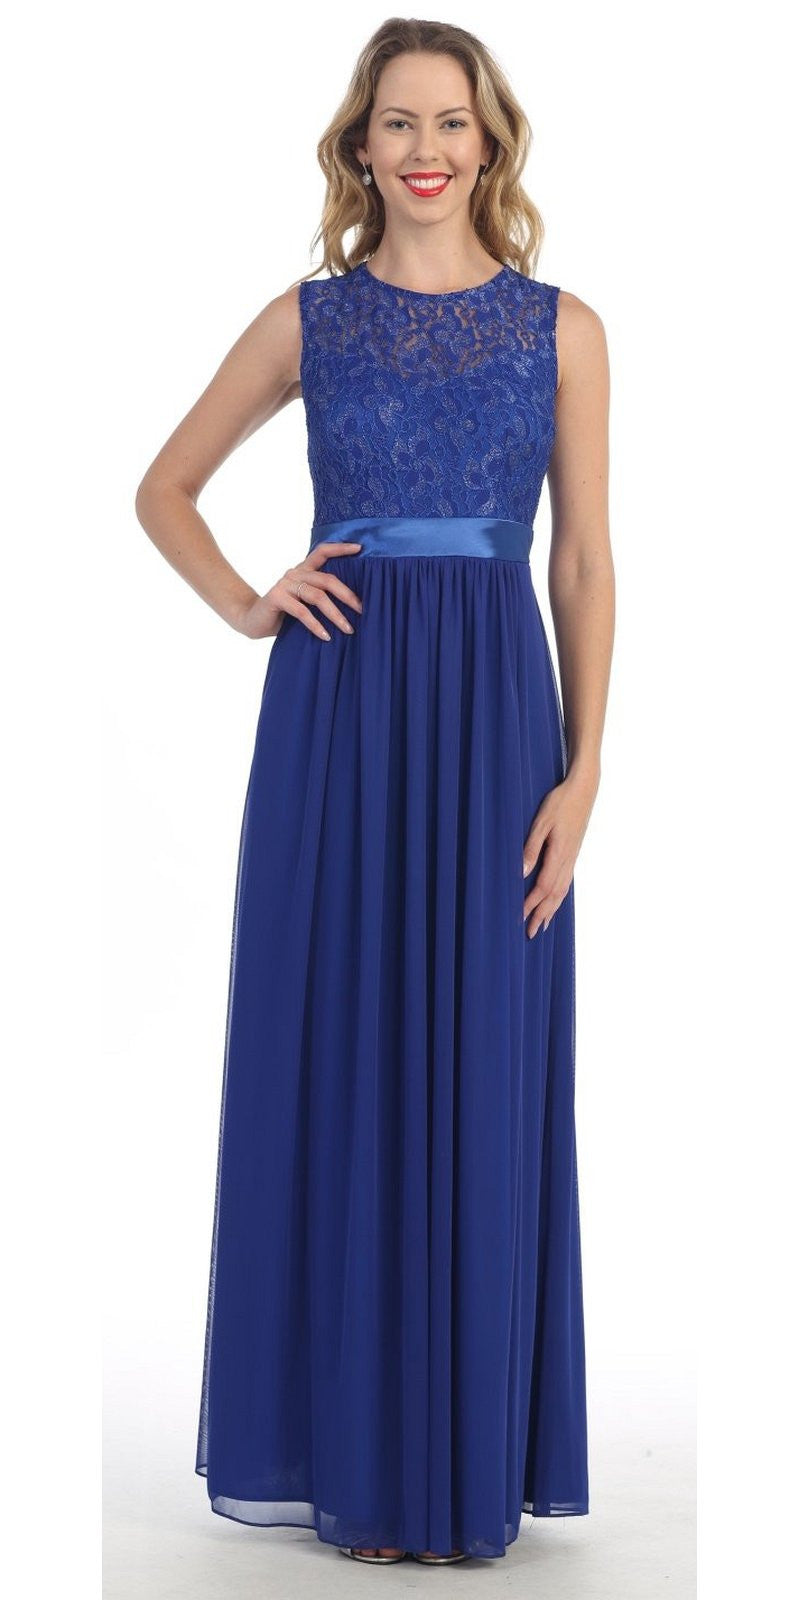 3f39ae69a7 Long Sleeveless Royal Blue Semi Formal Dress Lace Top Chiffon Skirt. Tap to  expand